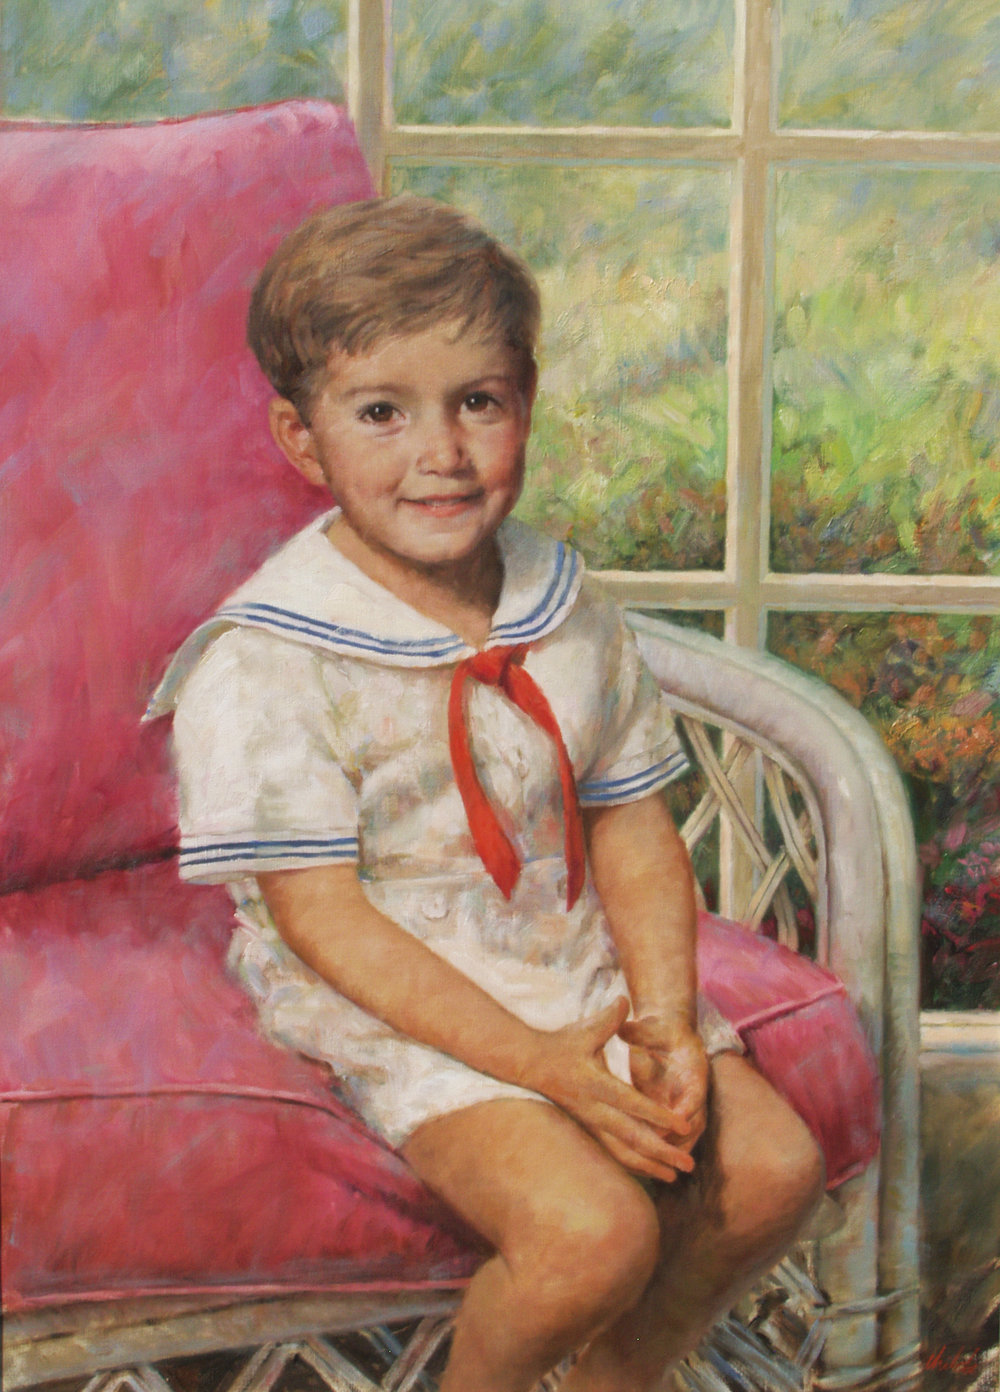 Boy with Sailor Outfit in Chair - 28x37